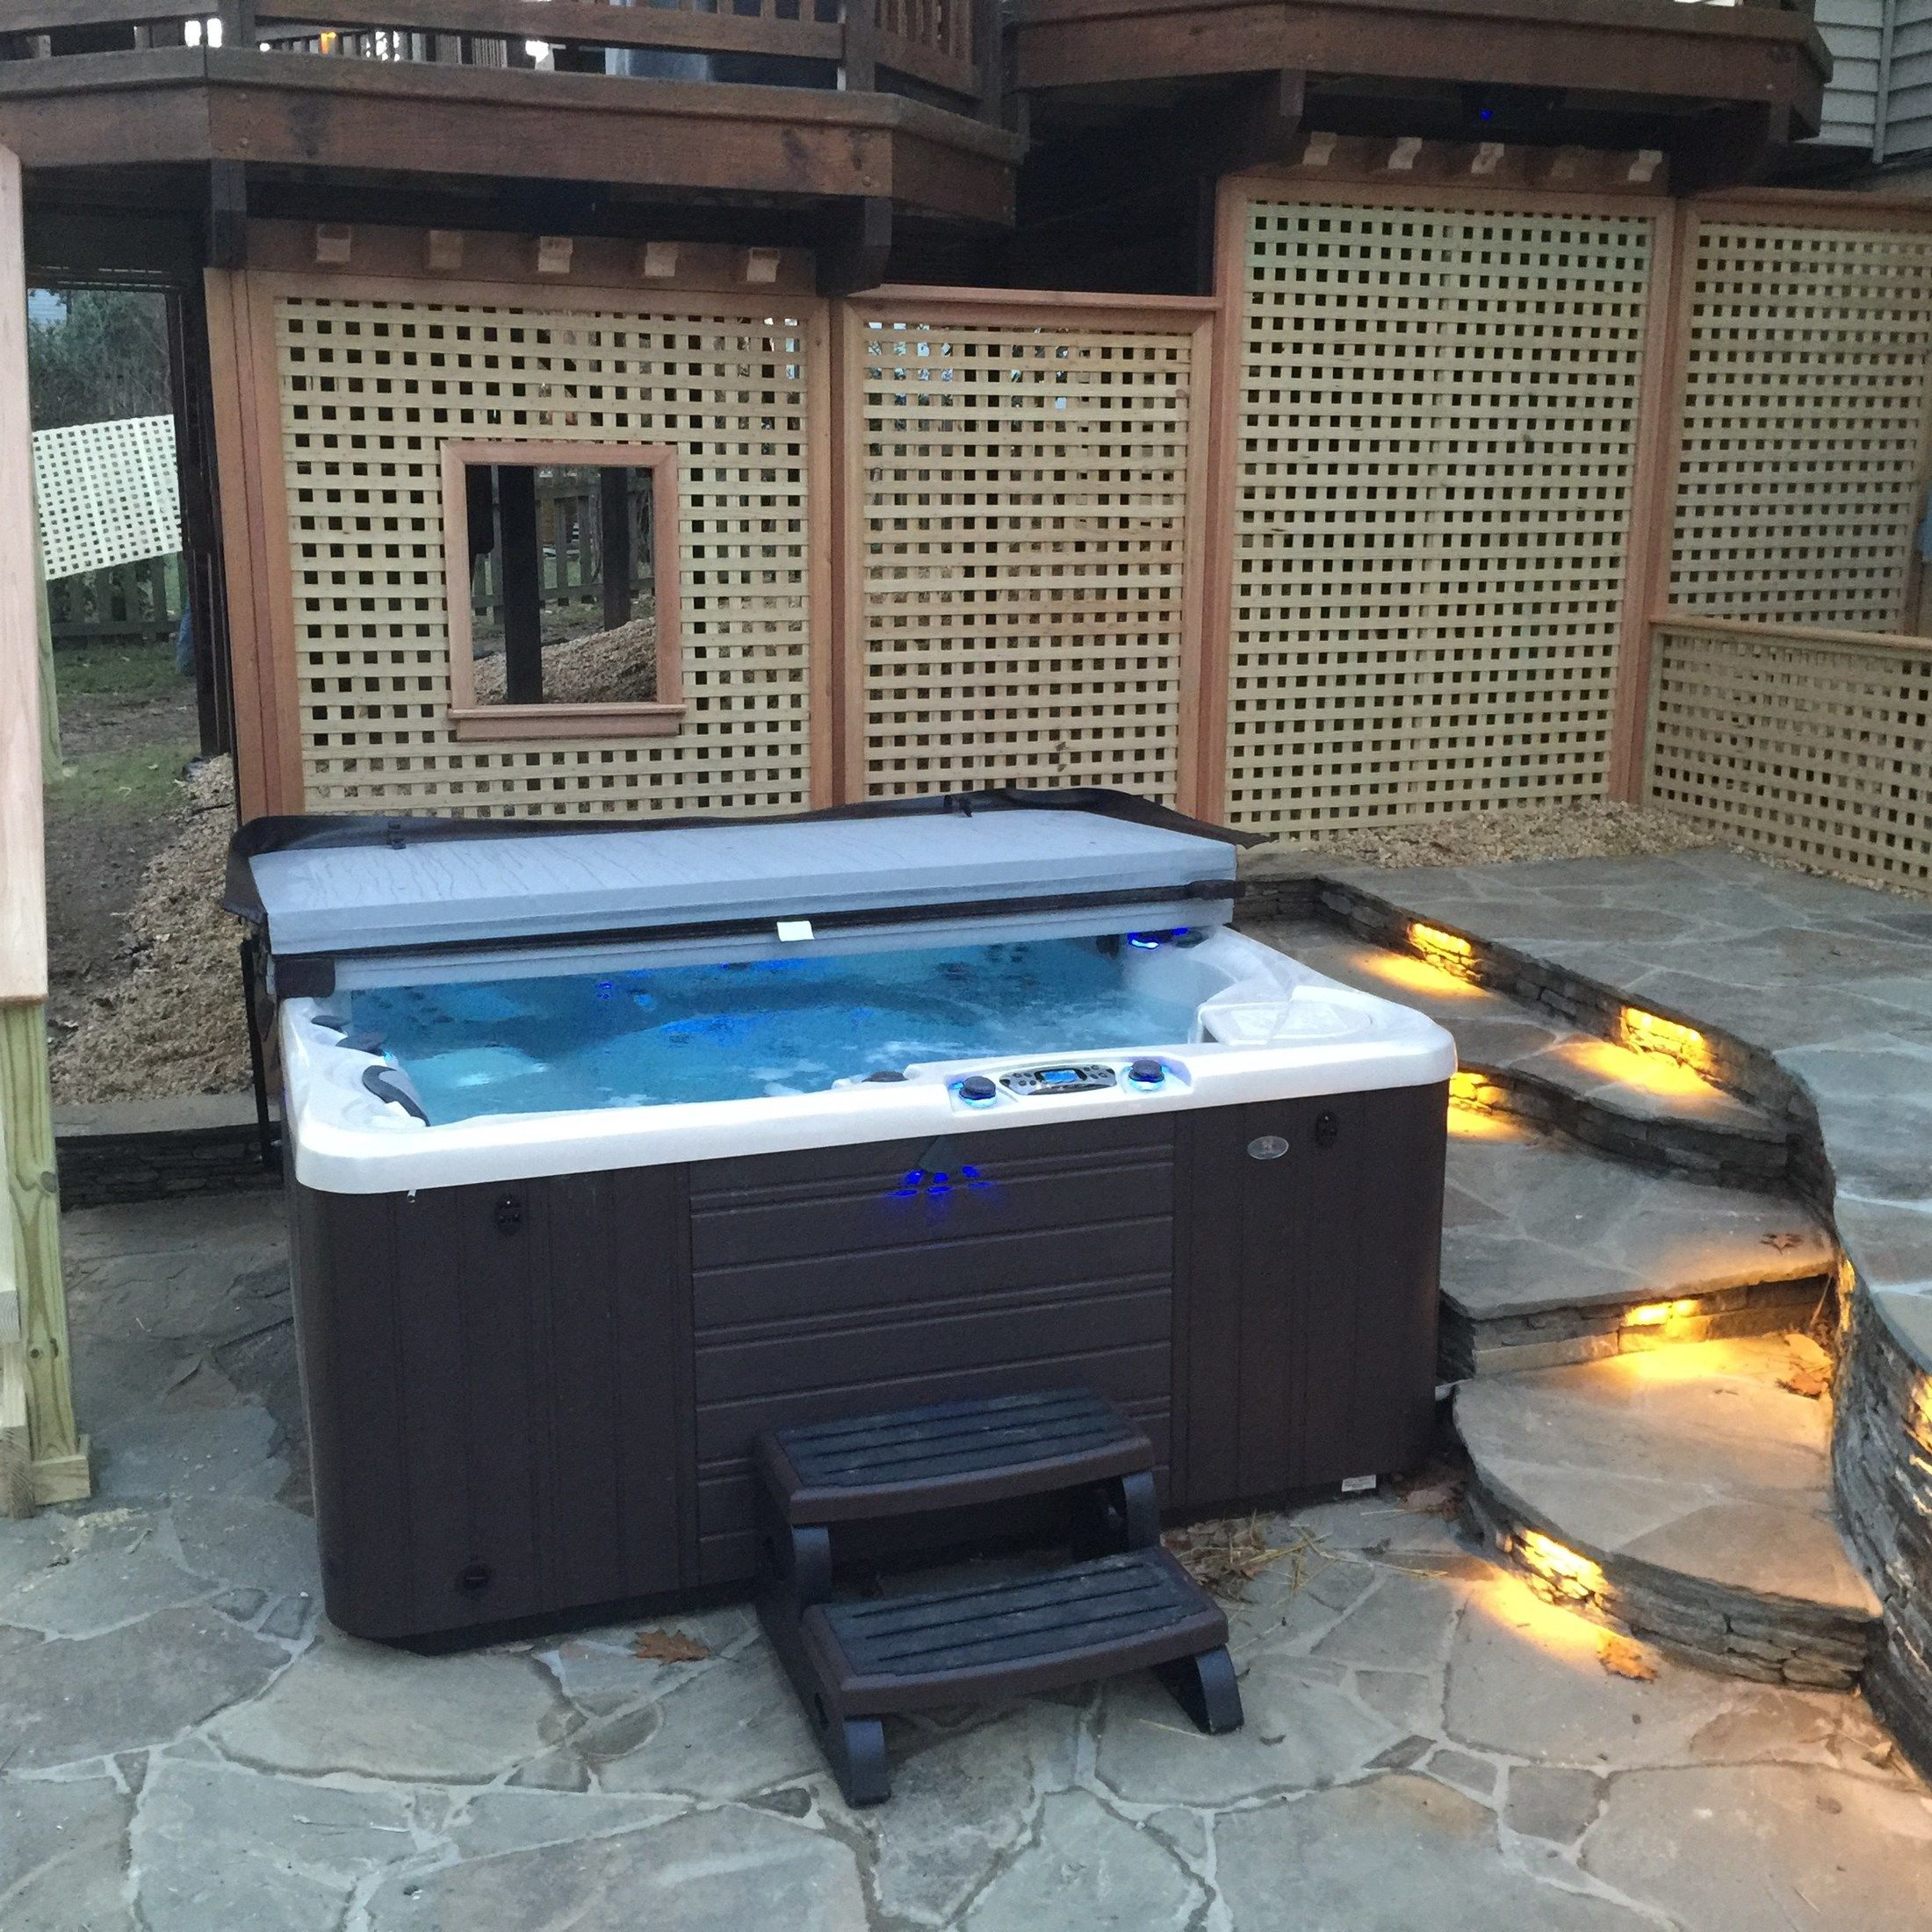 Flagstone patio with Hot tub. - Picture 2028